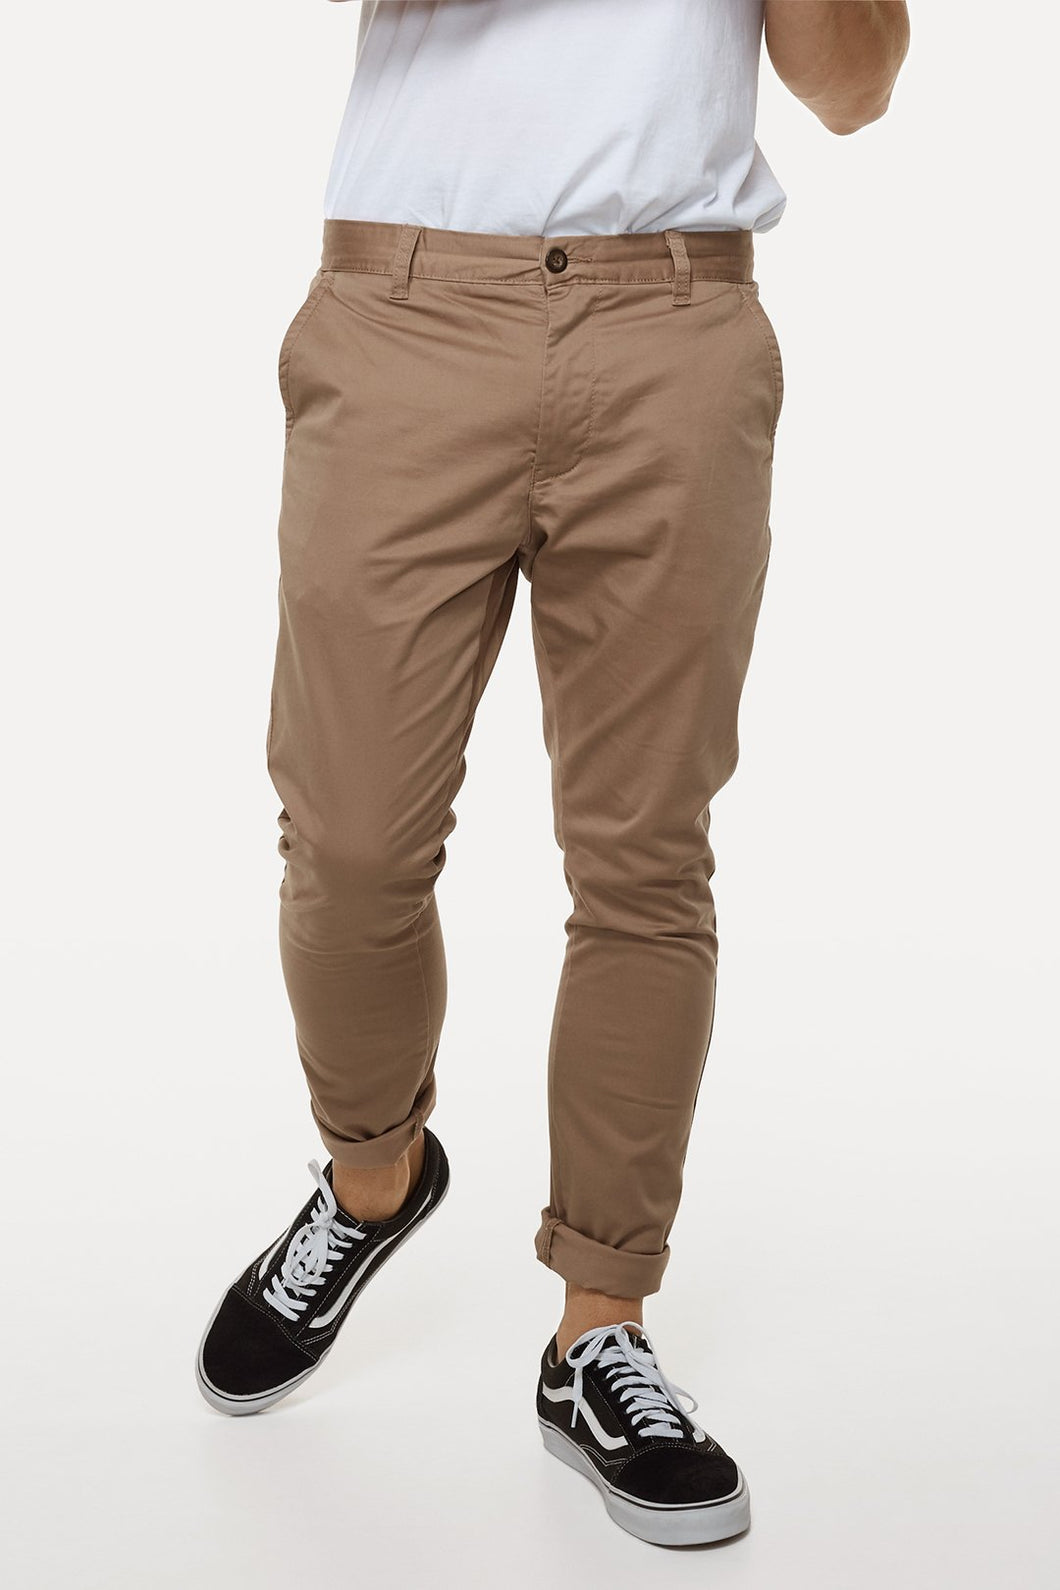 Industrie Mens The Cuba Chino Pant - CARAMEL